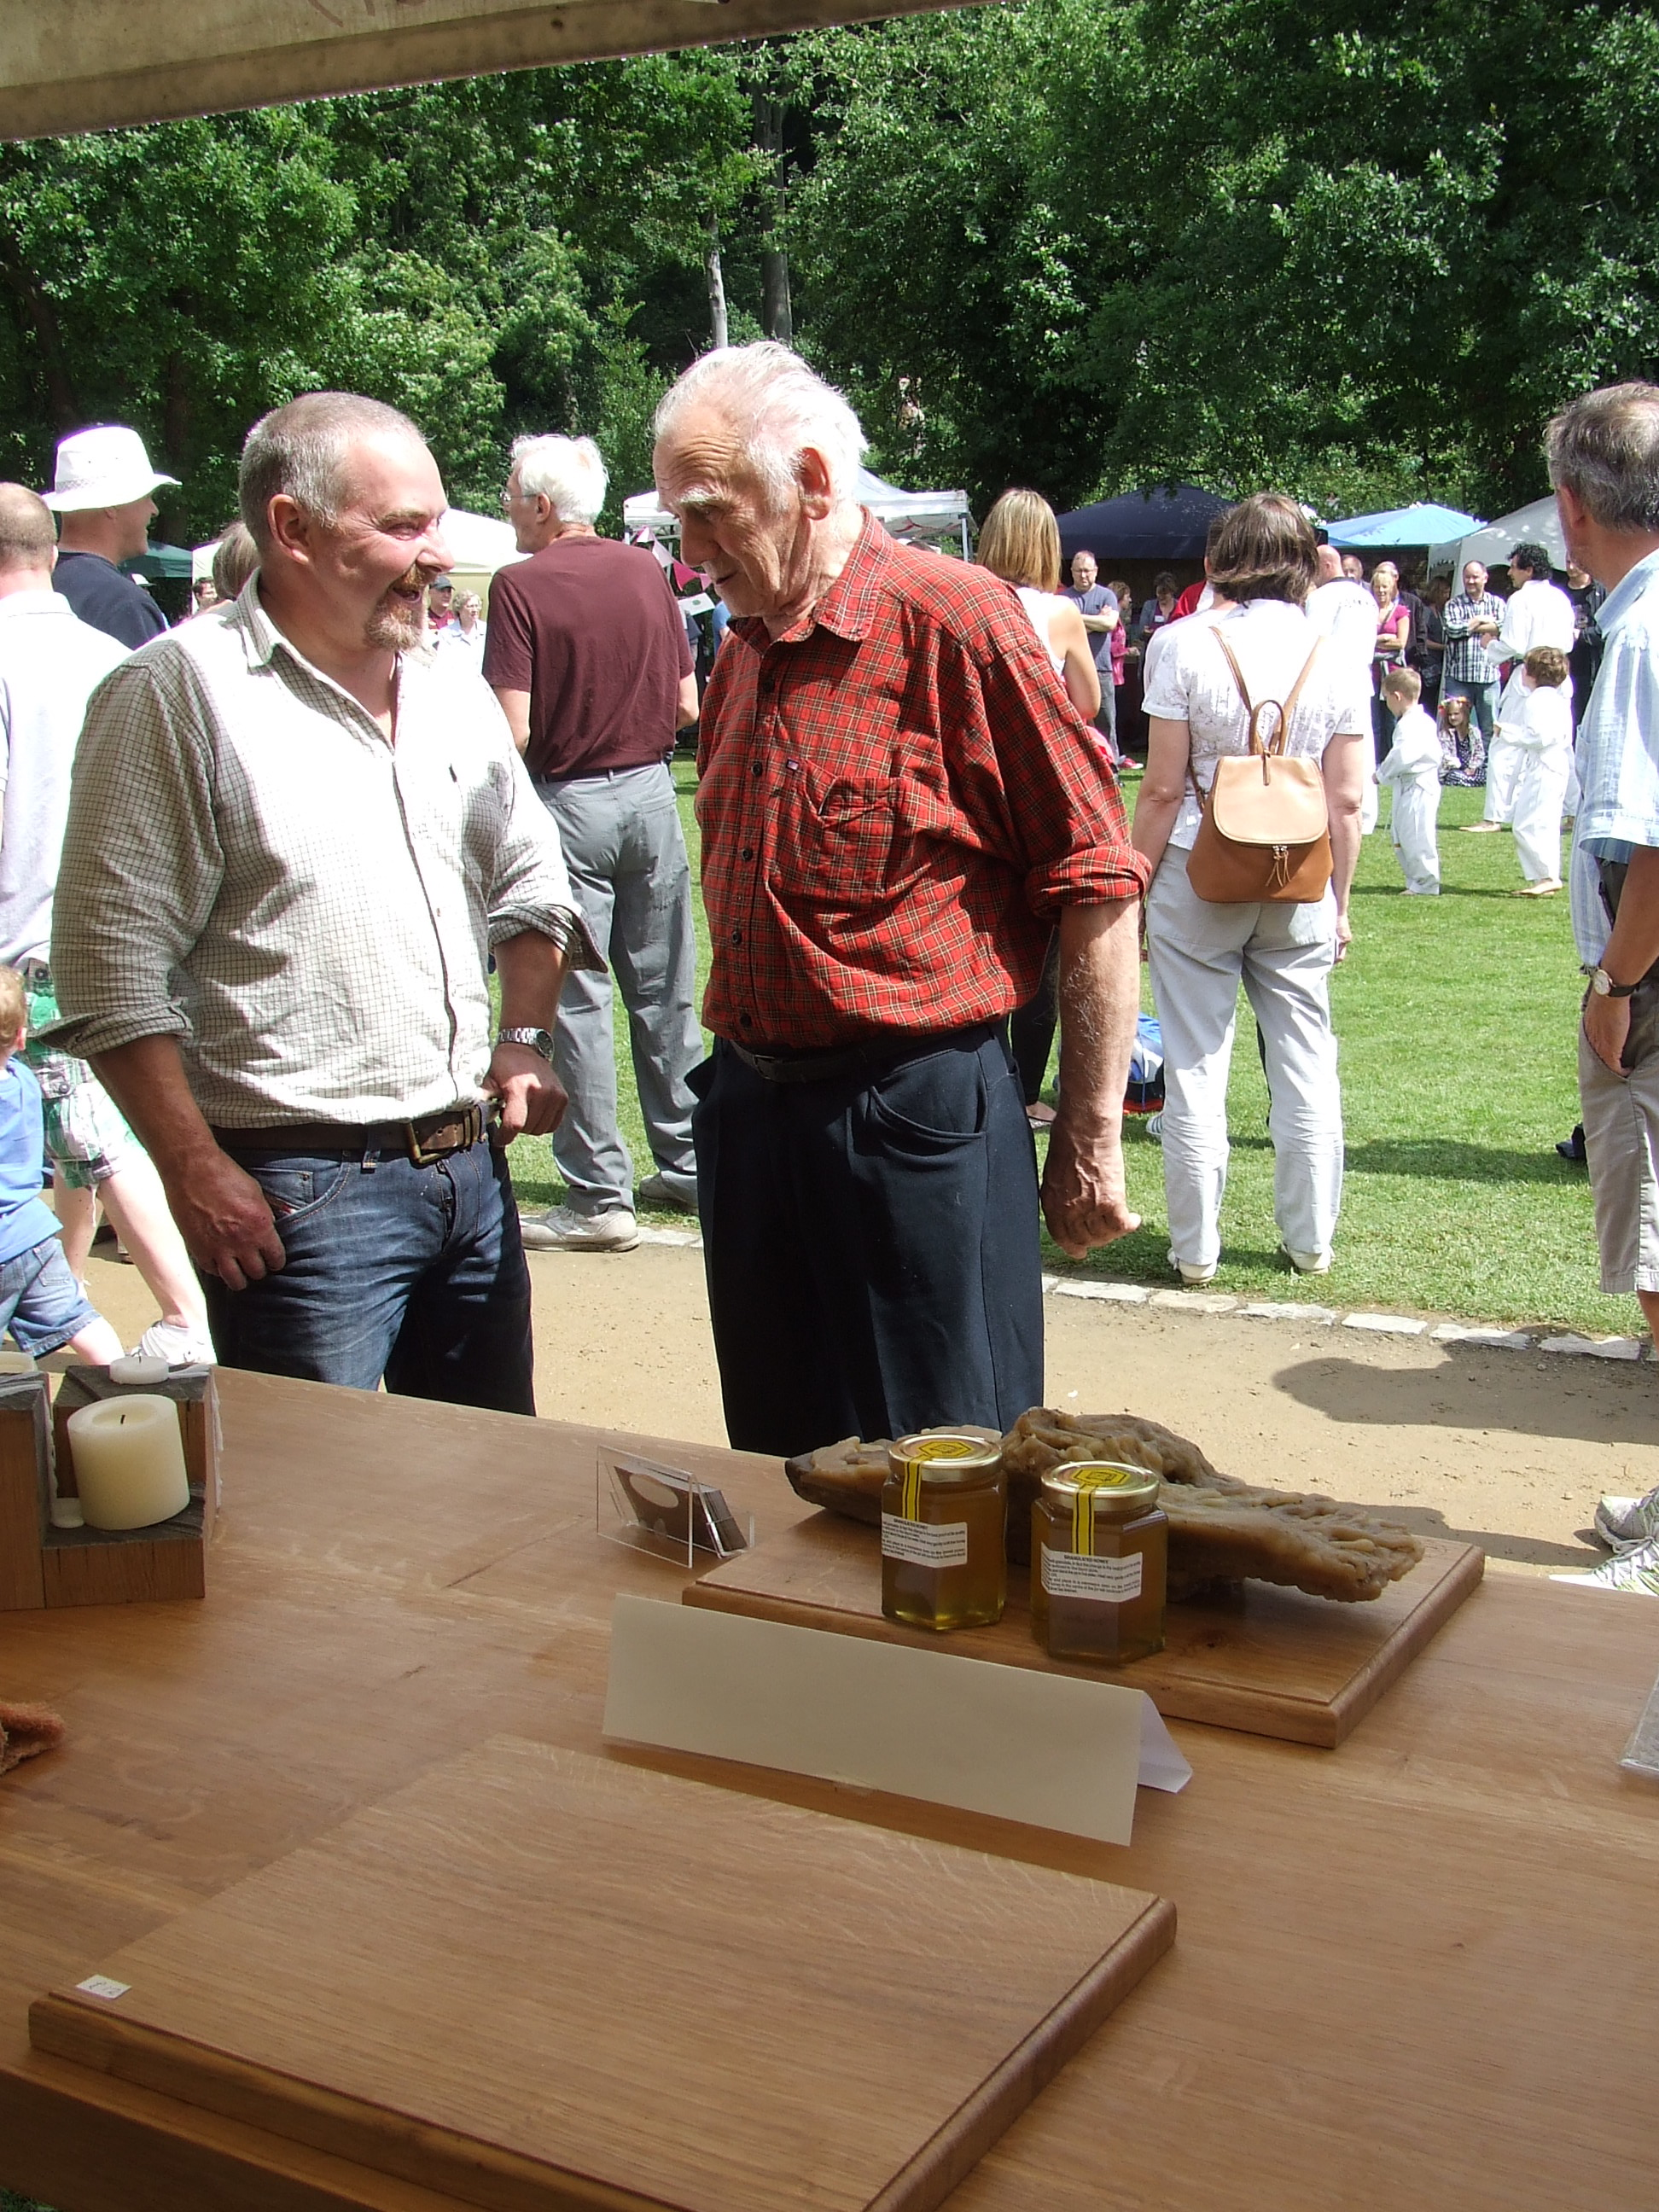 Marvelous Austin And Arnie, Master Cabinet Makers And Experts In The Use Of Our Local  Beeswax